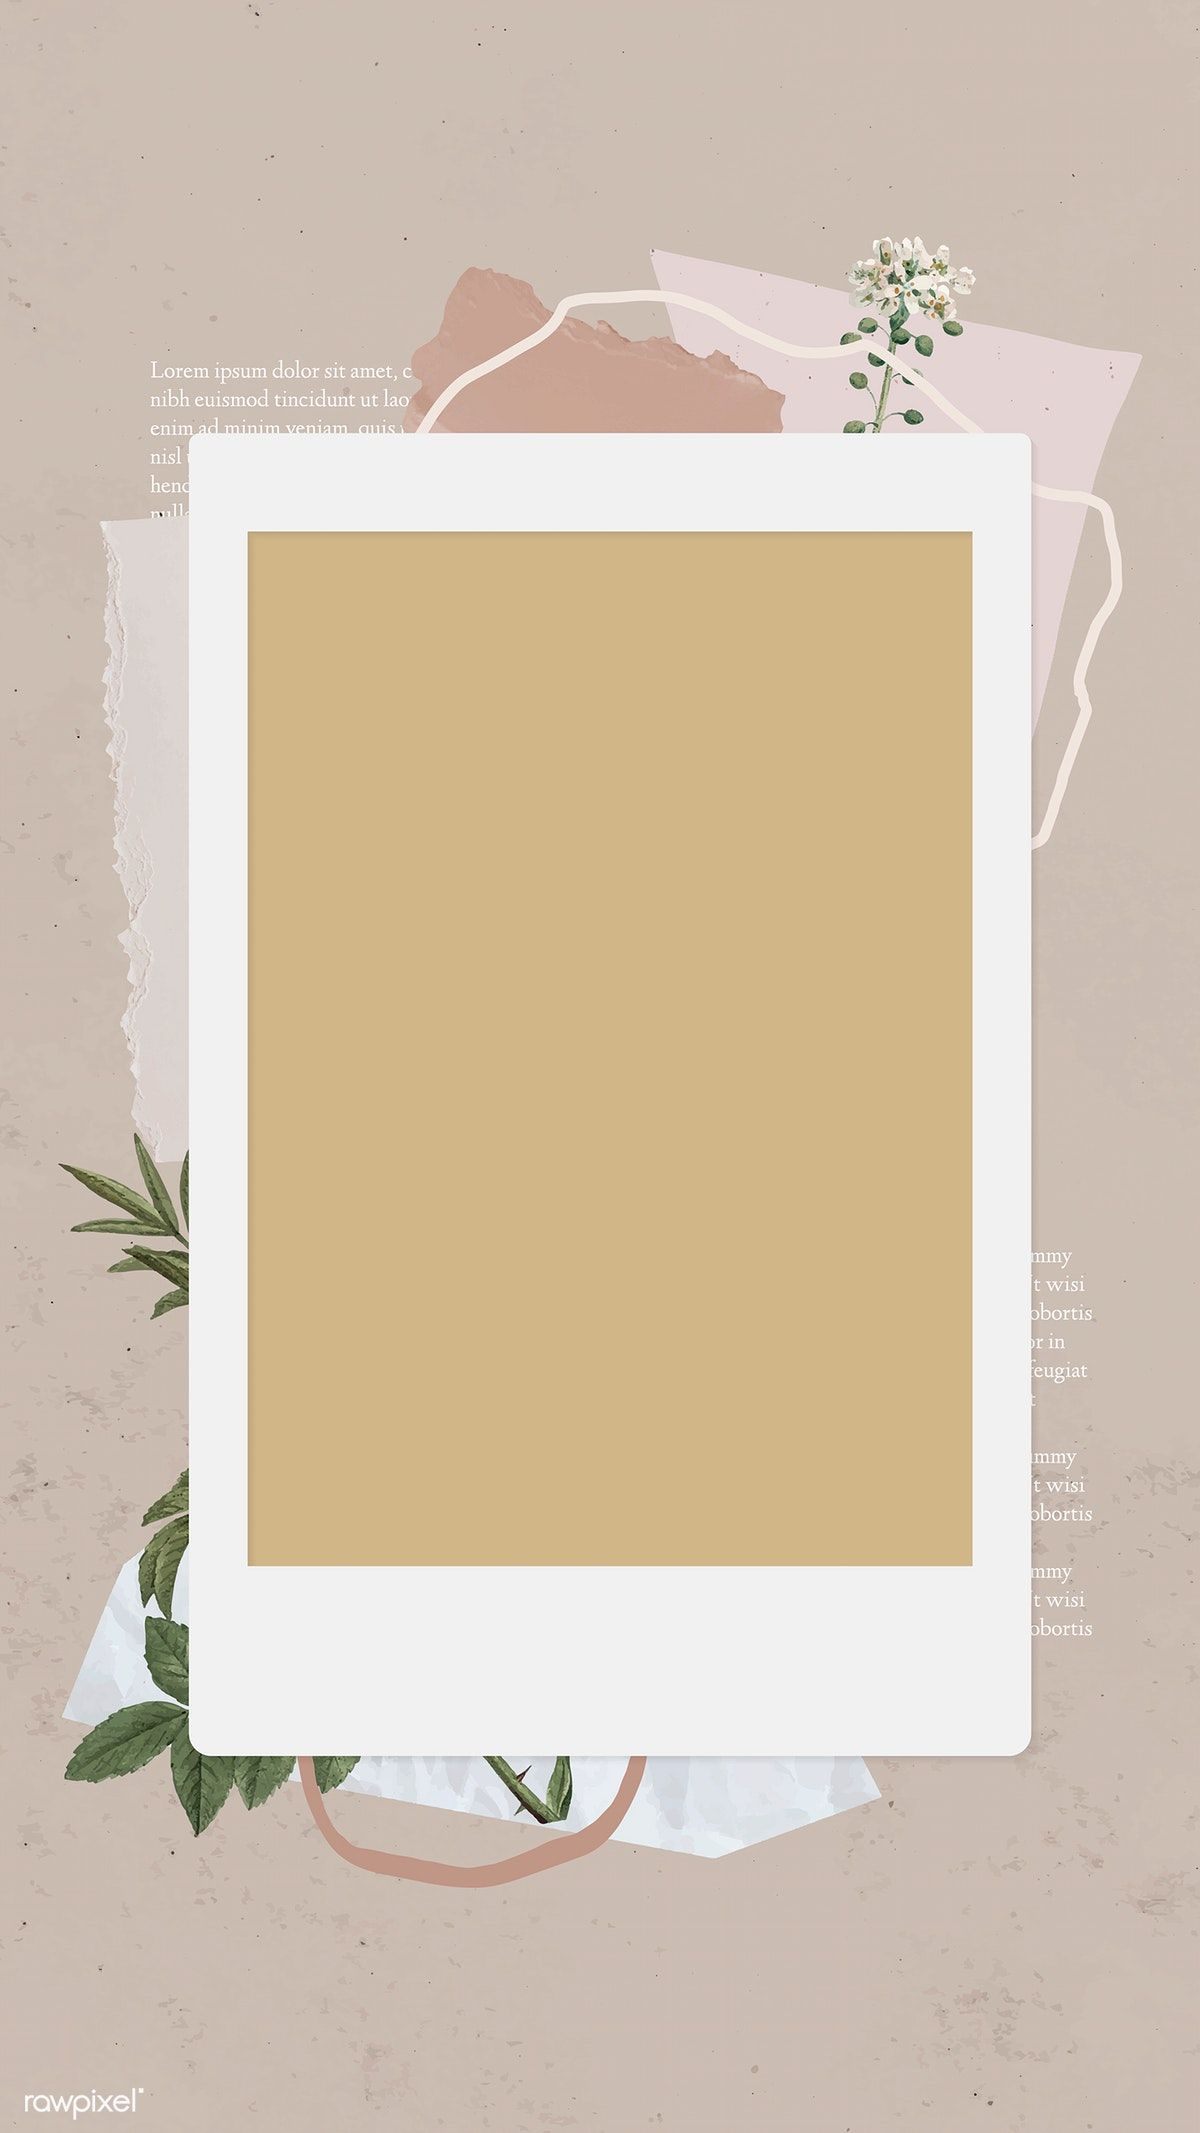 Download Premium Vector Of Blank Collage Photo Frame Template Vector Instagram Frame Template Instagram Frame Frame Template